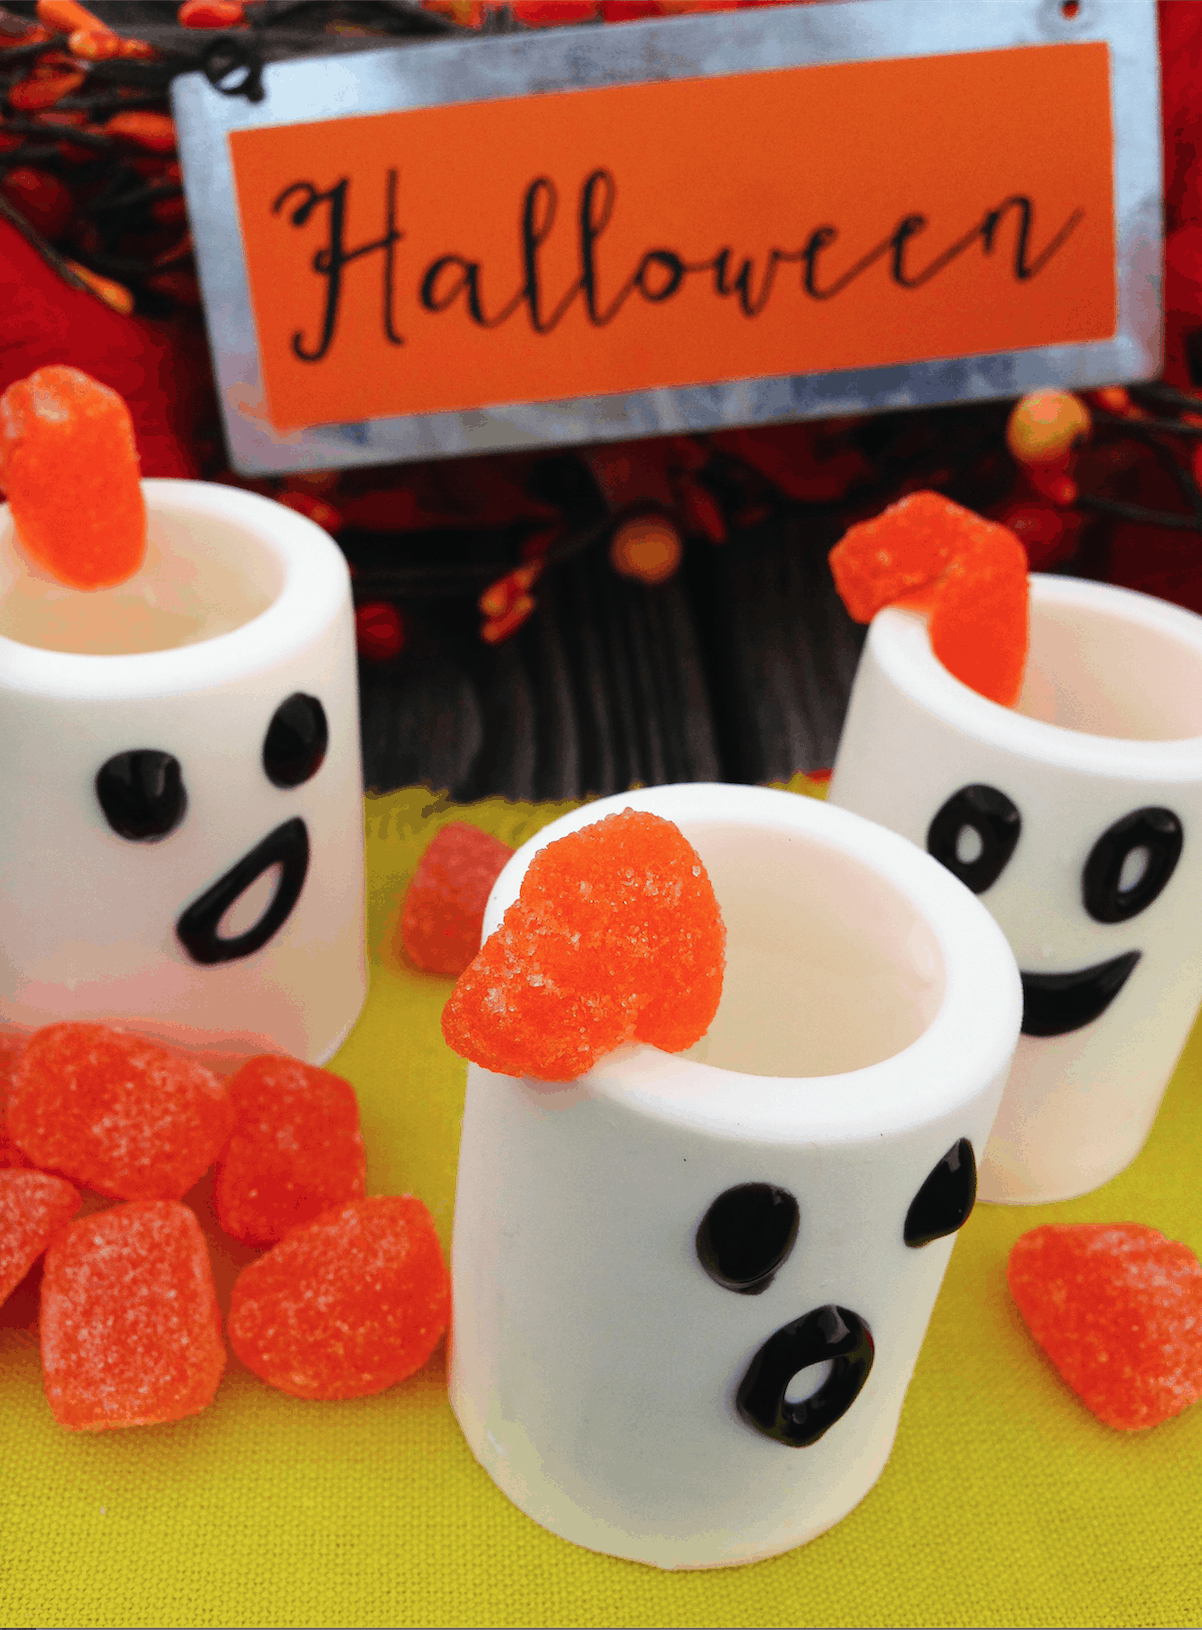 Edible Ghost Shot Glasses with Marshmallow Infused White Rum